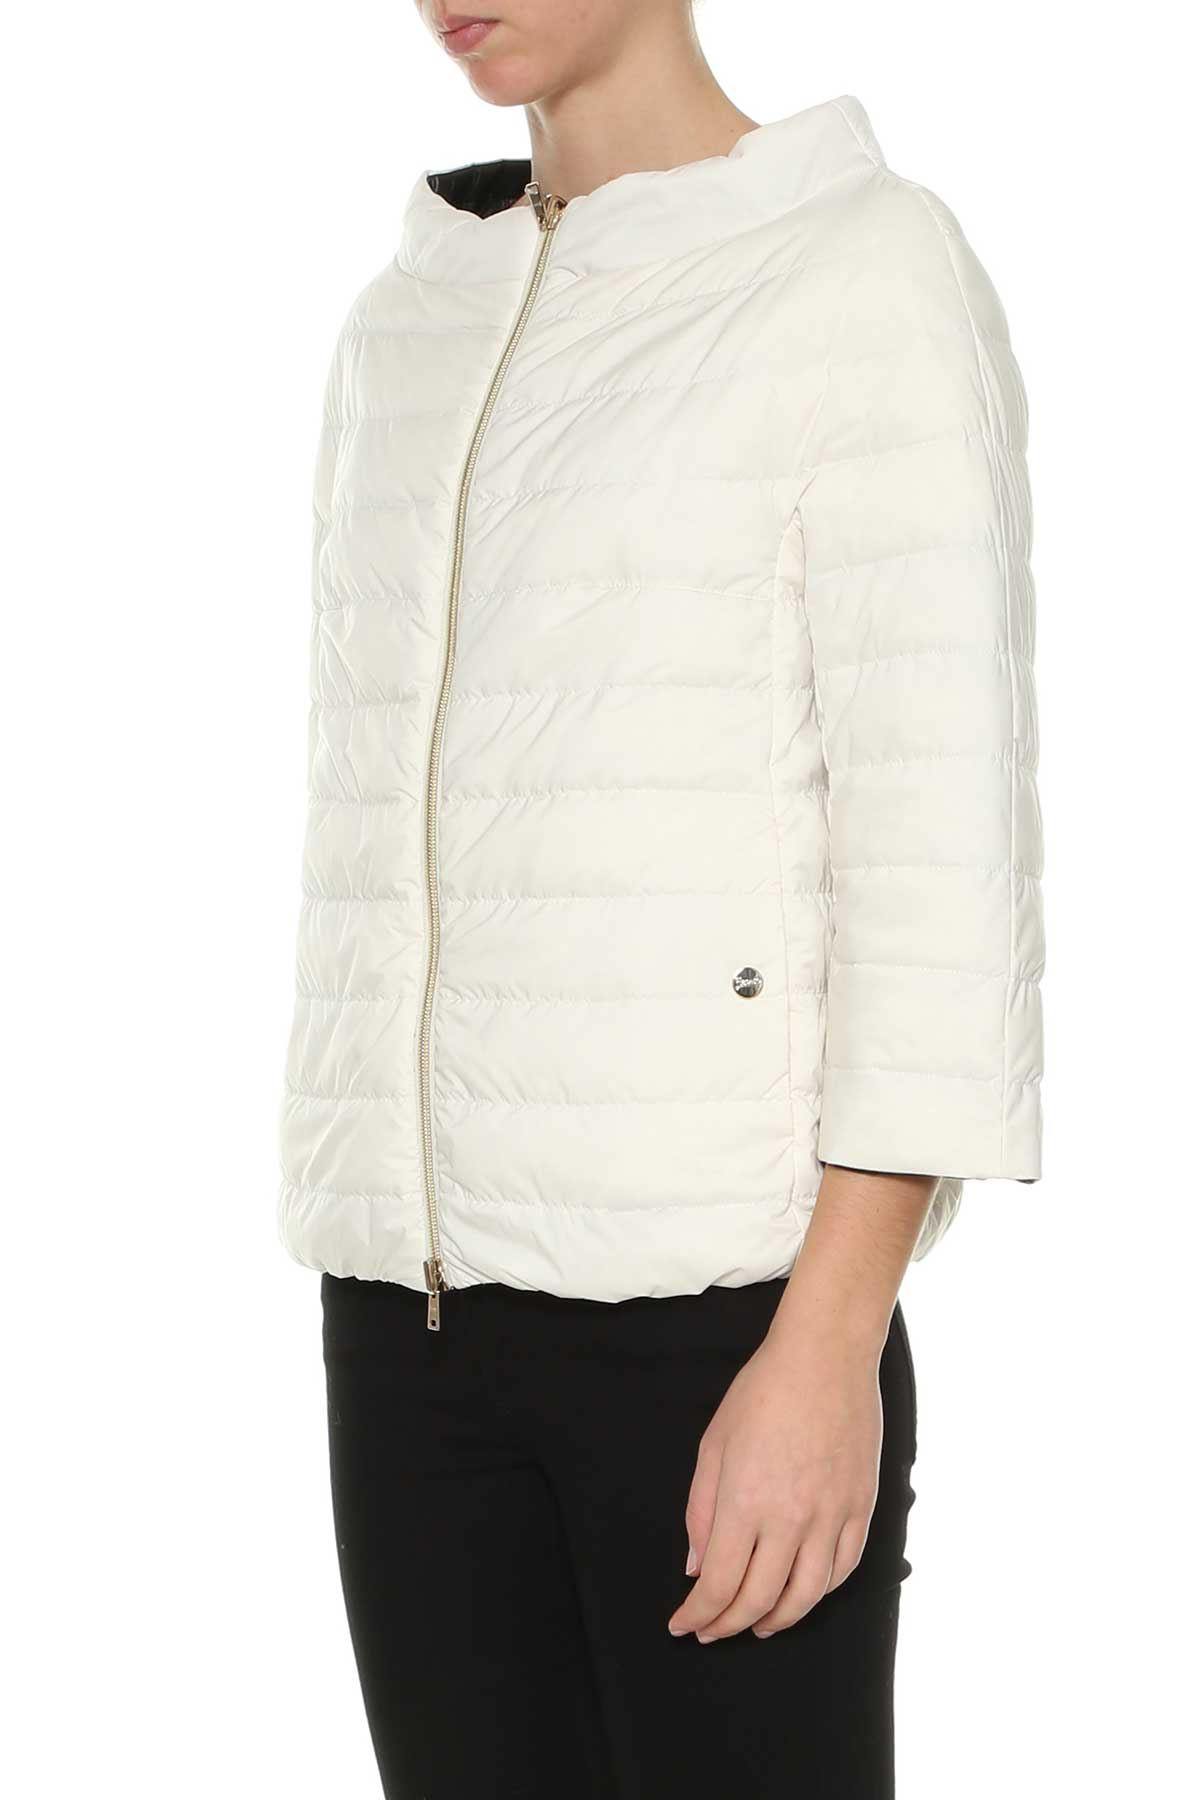 Herno Reversible Down Jacket - Bianco/nero